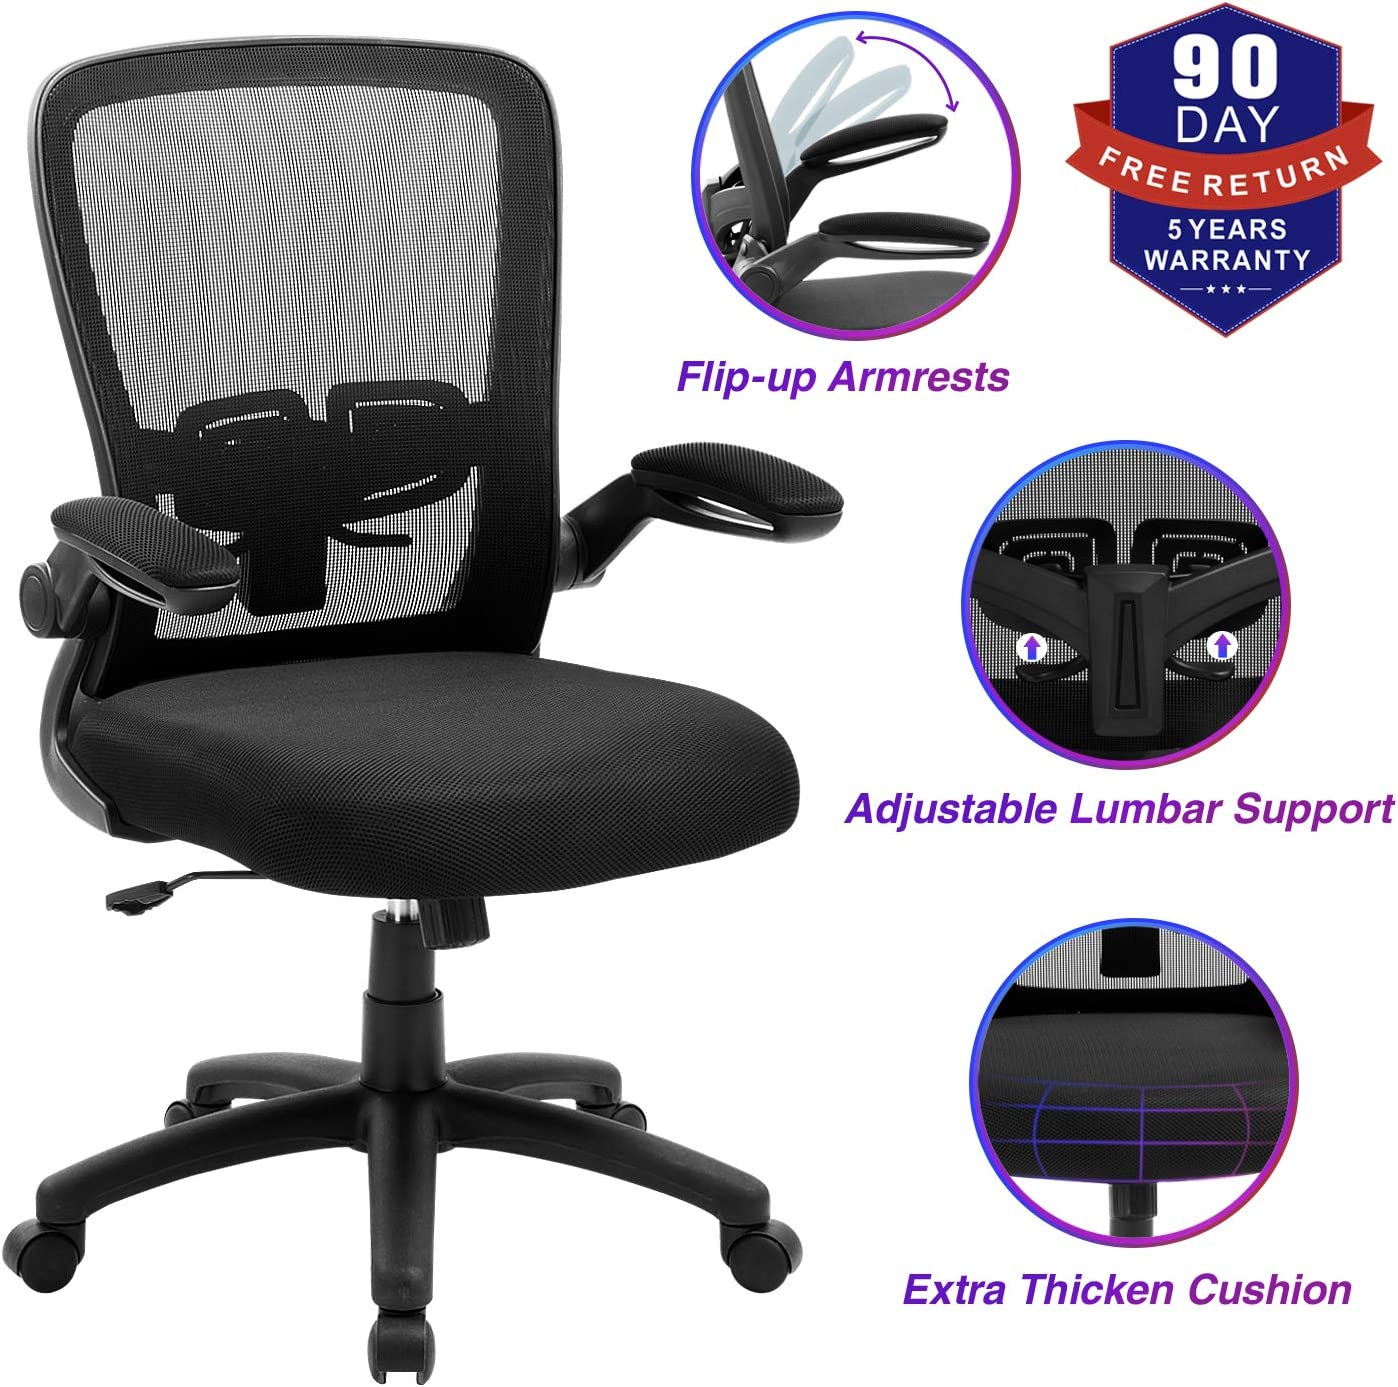 Amazon Com Office Chair Zlhecto Ergonomic Desk Chair With Adjustable Height And Lumbar Support High Back Mesh Computer Chair With Flip Up Armrests For Conference Room 300lb Weight Capacity Kitchen Dining